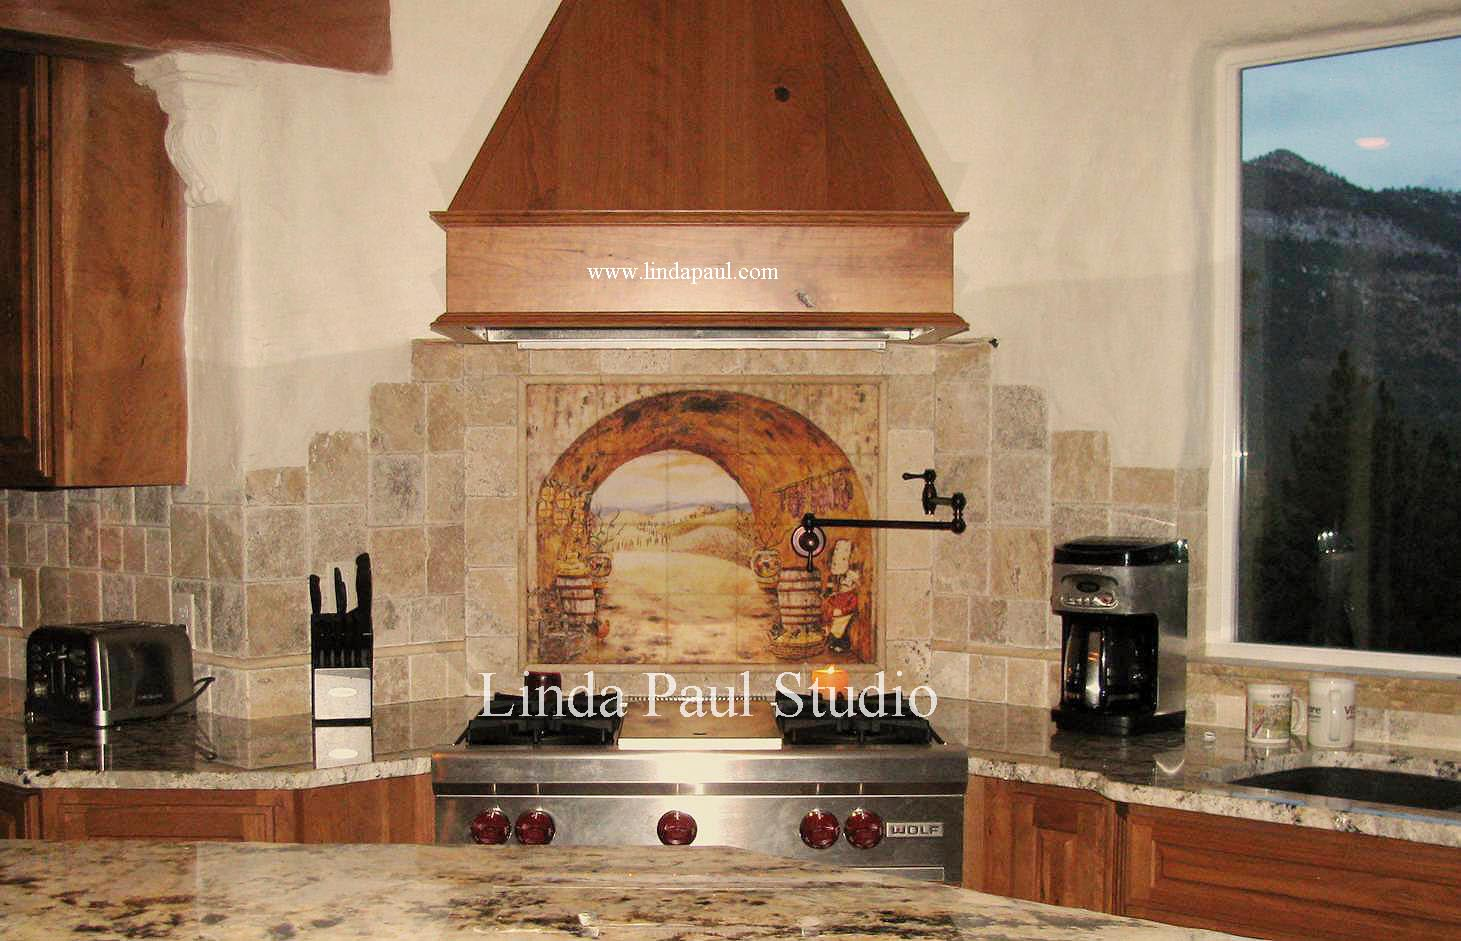 Top Stone Tile Kitchen Backsplash Ideas 1461 x 941 · 174 kB · jpeg